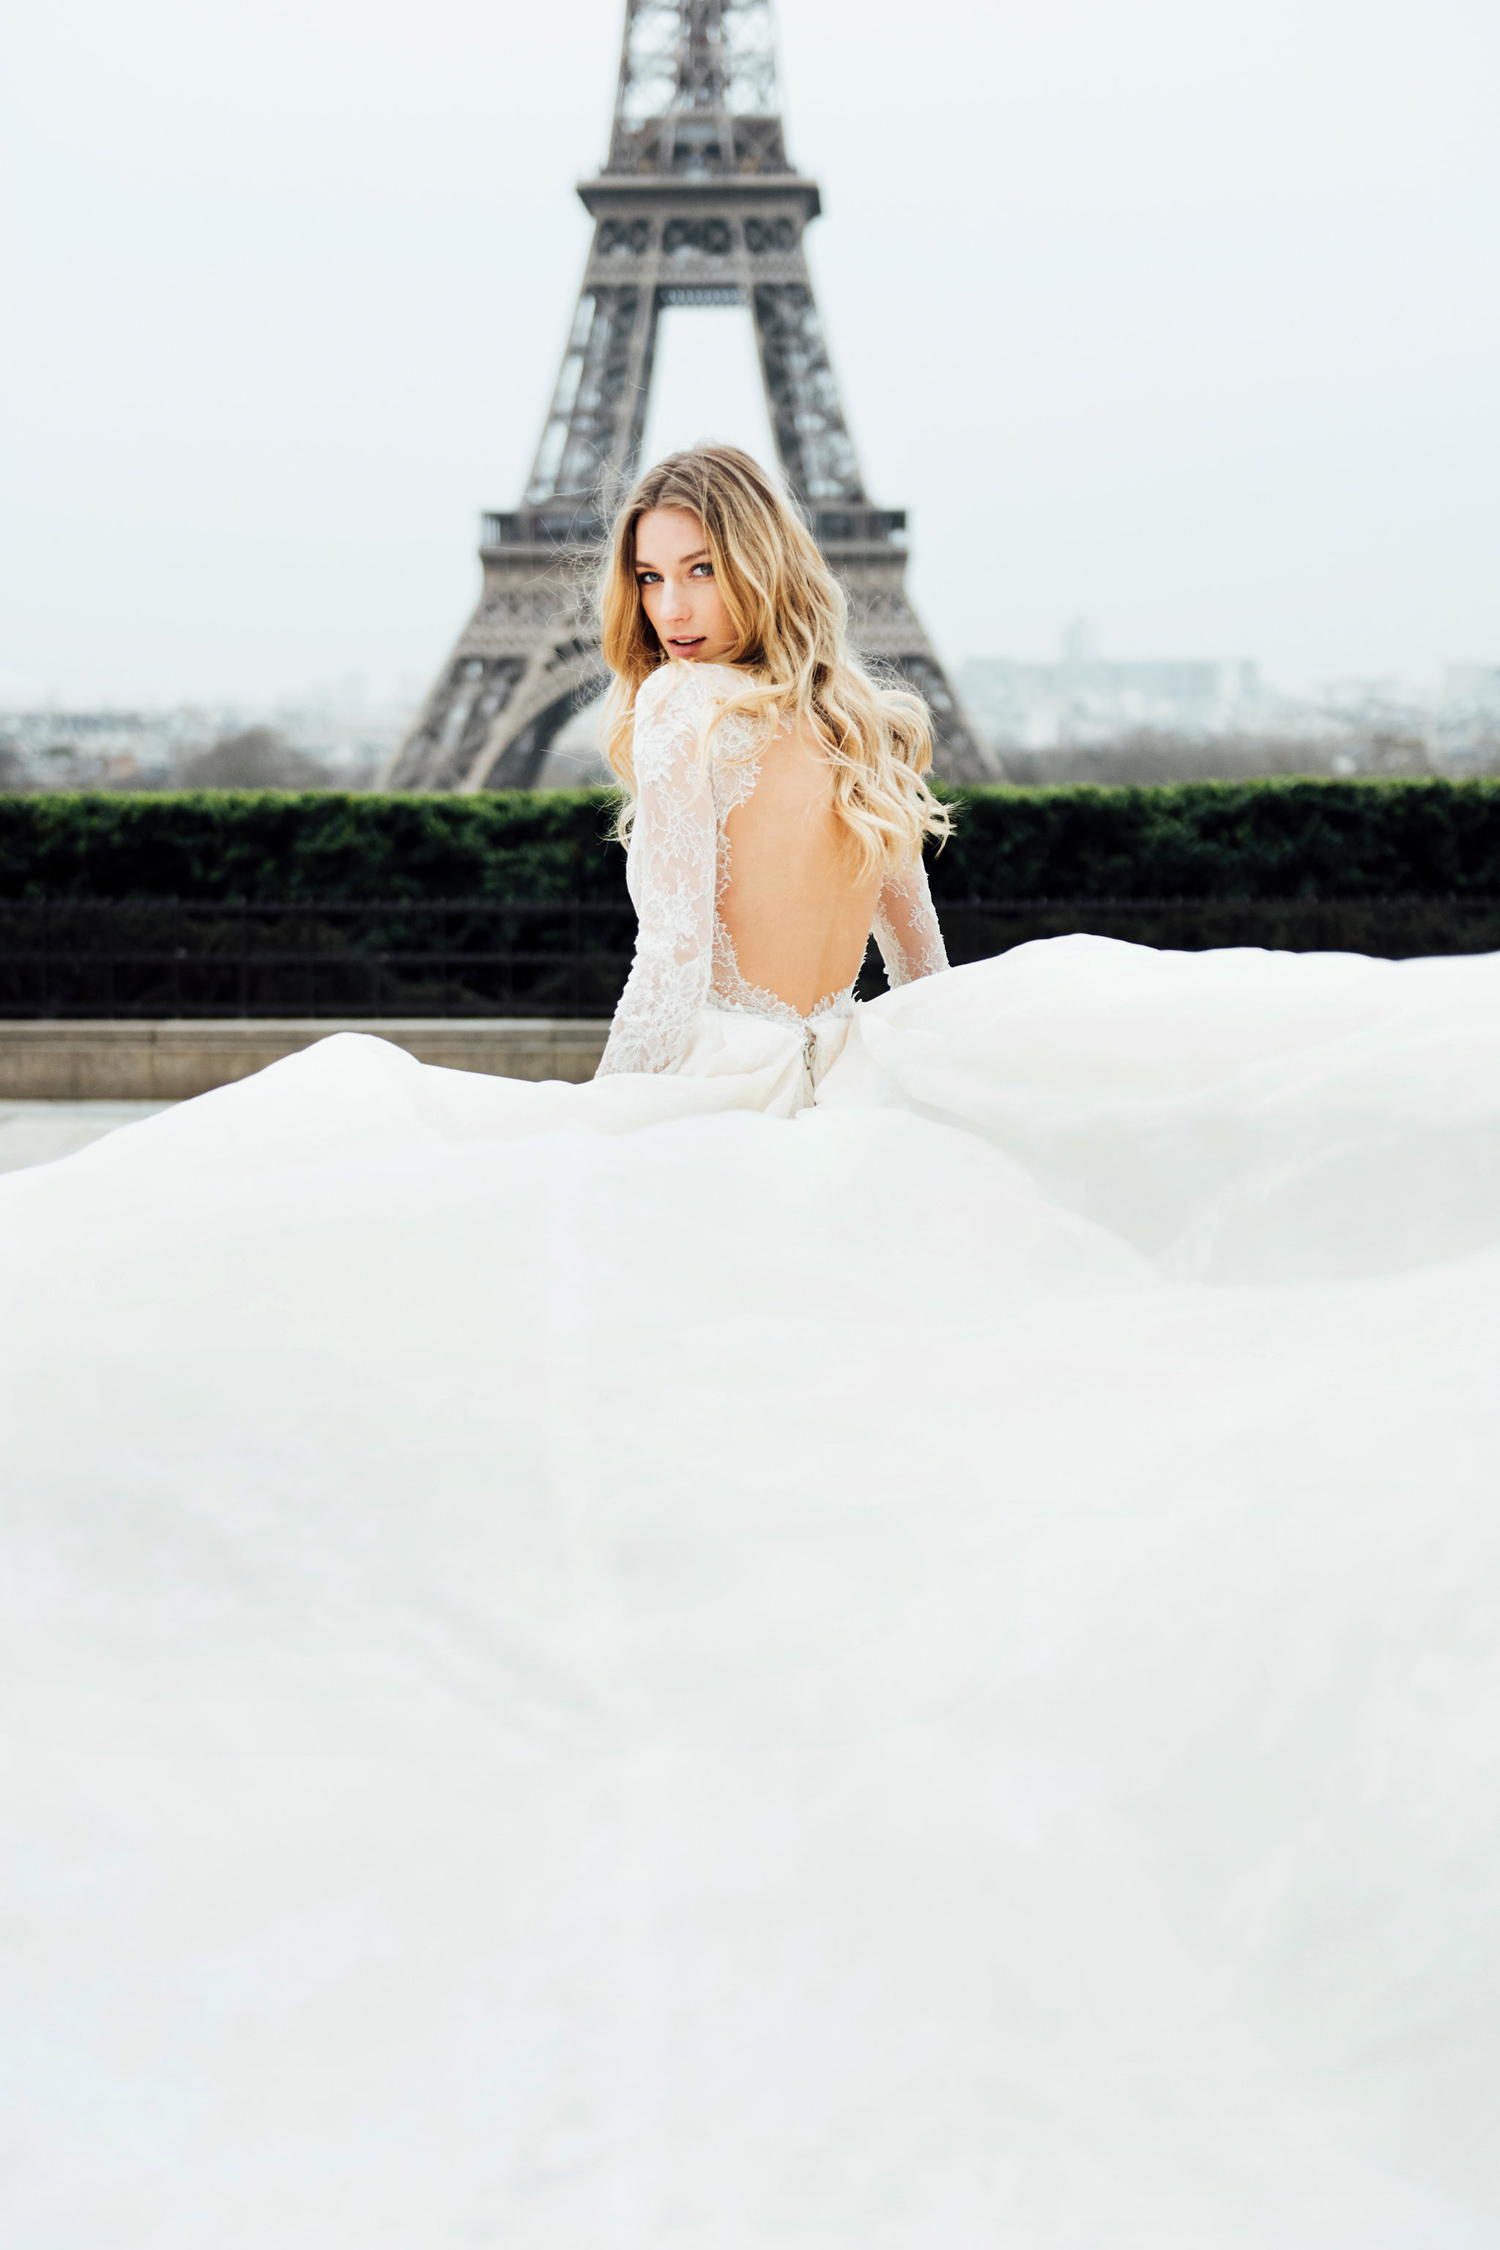 katie mitchell monique lhuillier bridal paris france wedding photographer_04.jpg